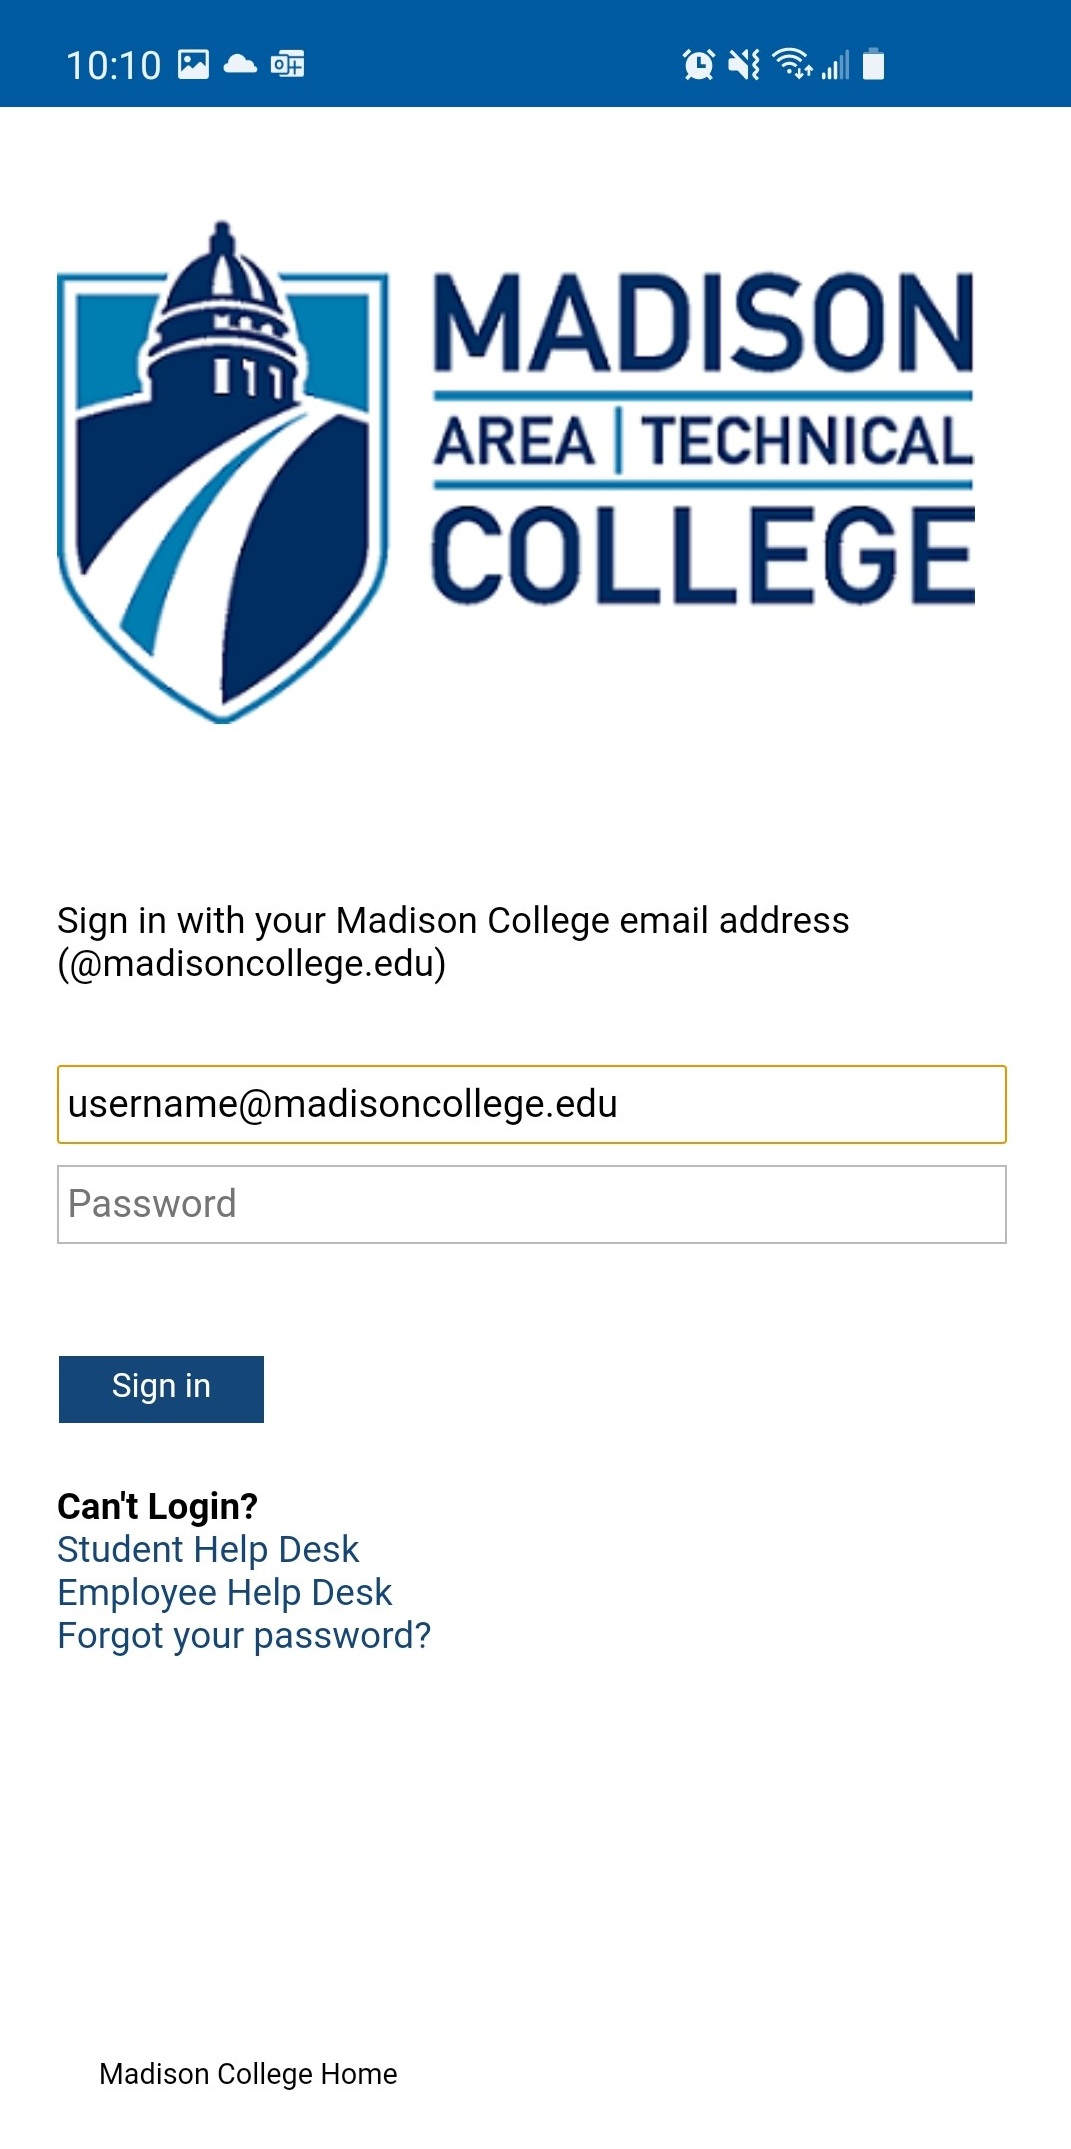 Sign in with MC email and password